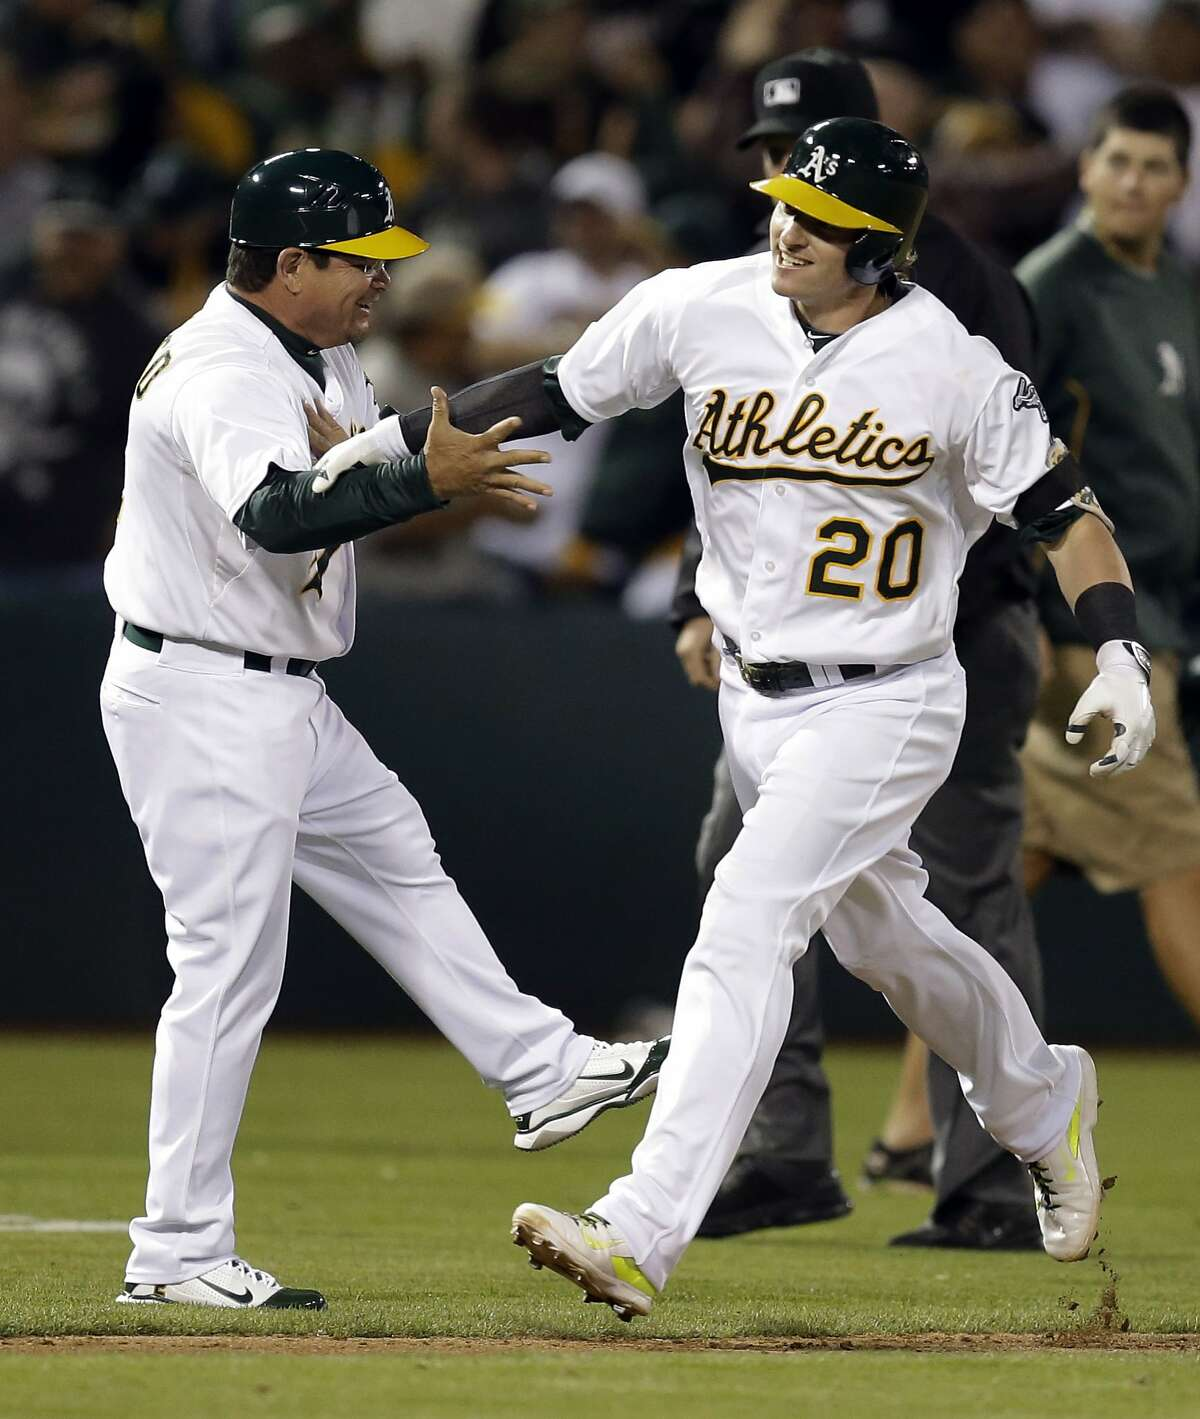 Oakland Athletics' Josh Donaldson (20) is congratulated by third base coach Mike Gallego, left, after Donaldson hit the game-winning three-run home run off Baltimore Orioles' Zach Britton in the ninth inning of a baseball game Friday, July 18, 2014, in Oakland, Calif. Oakland won 5-4. (AP Photo/Ben Margot)